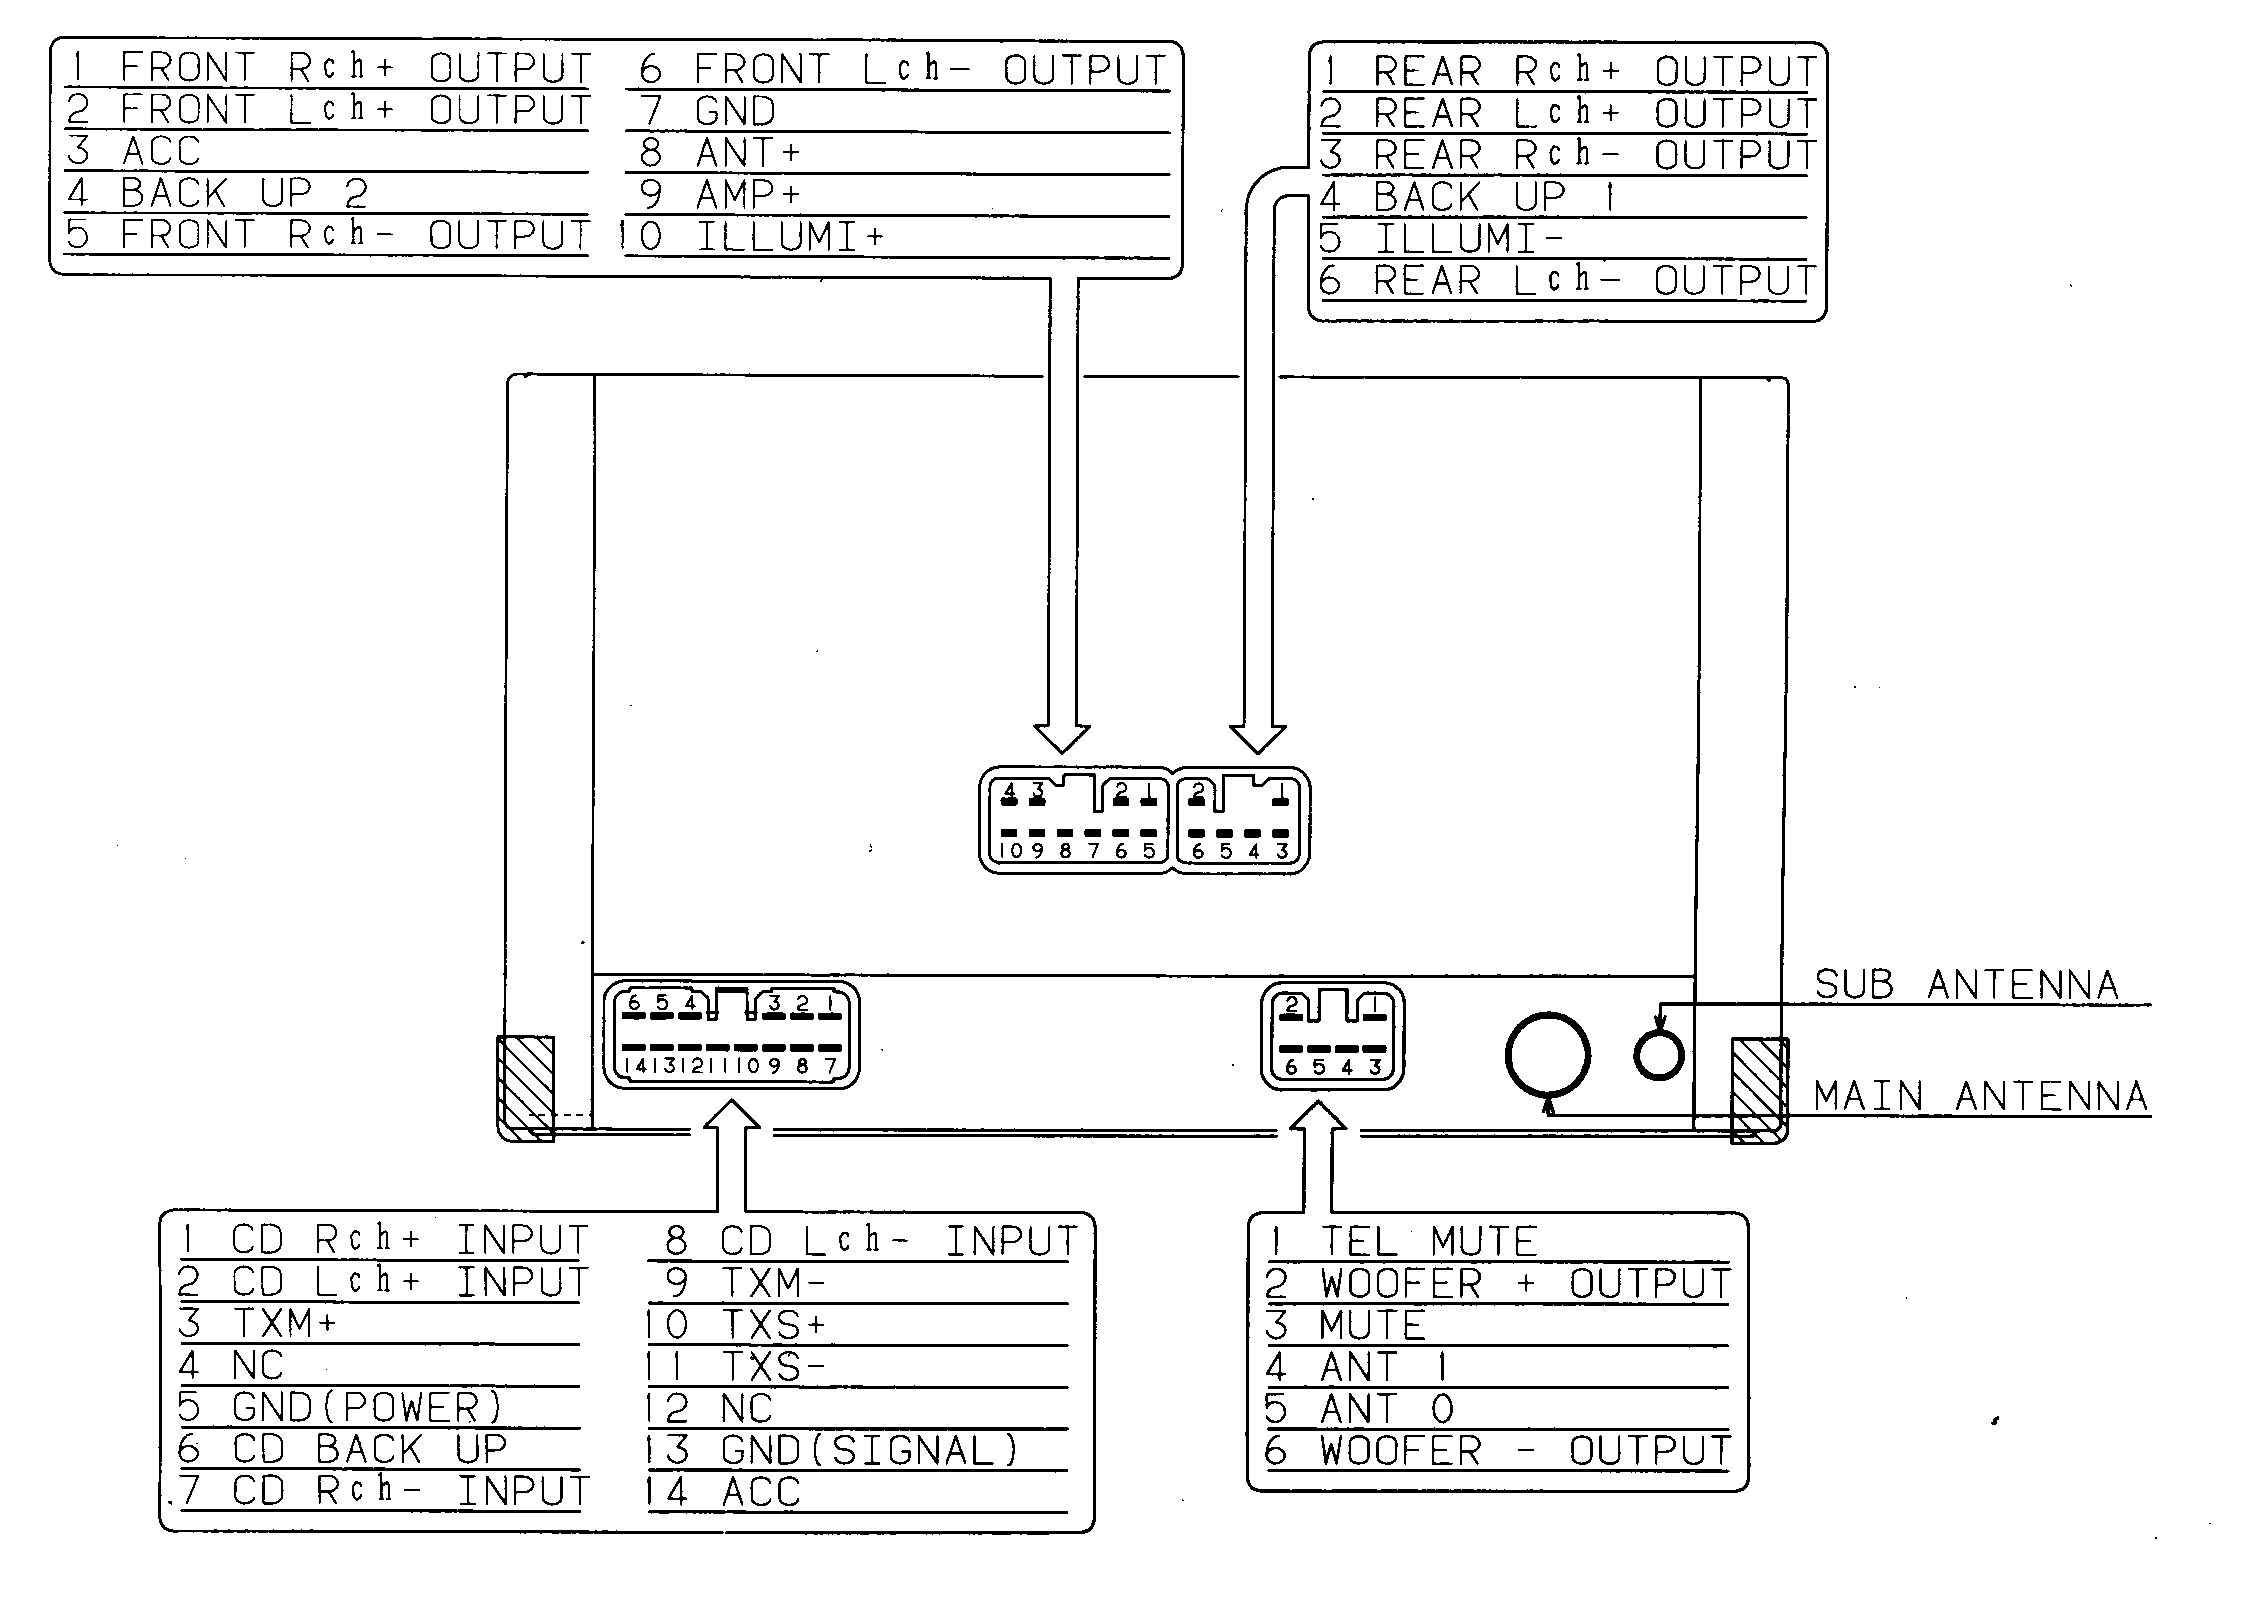 WireHarnessLexus121001 car audio wire diagram codes lexus factory car stereo repair audio wiring diagram at soozxer.org